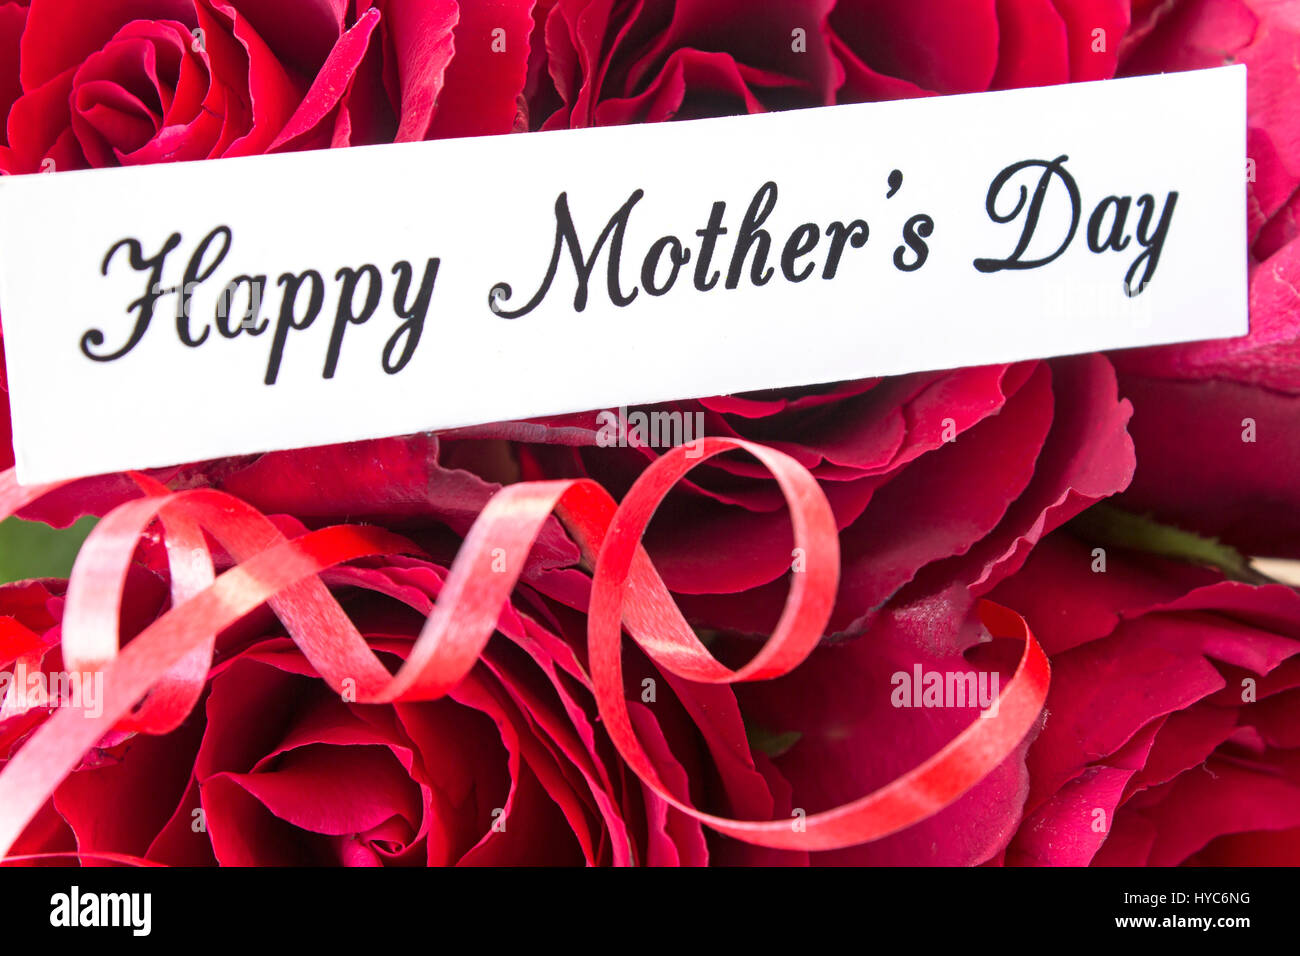 Happy Mothers Day Greeting Card With Bouquet Of Red Roses Close